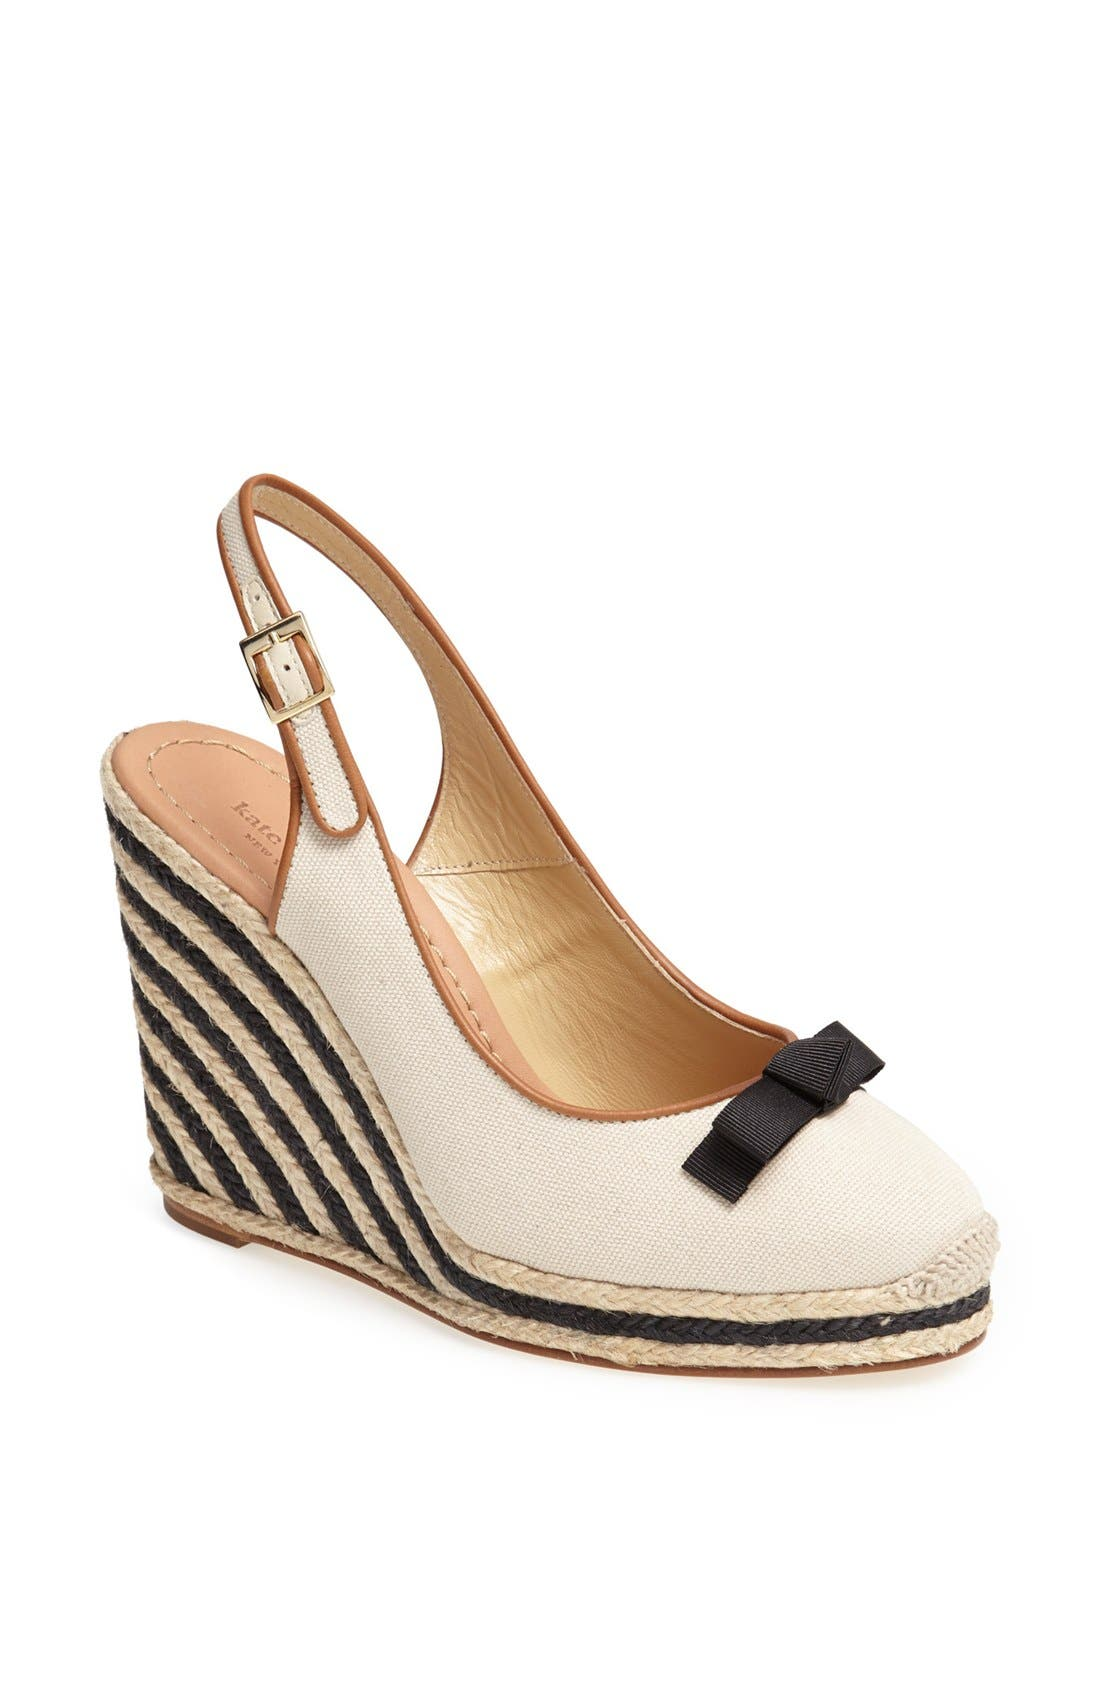 Alternate Image 1 Selected - kate spade new york 'sweetie' platform wedge espadrille